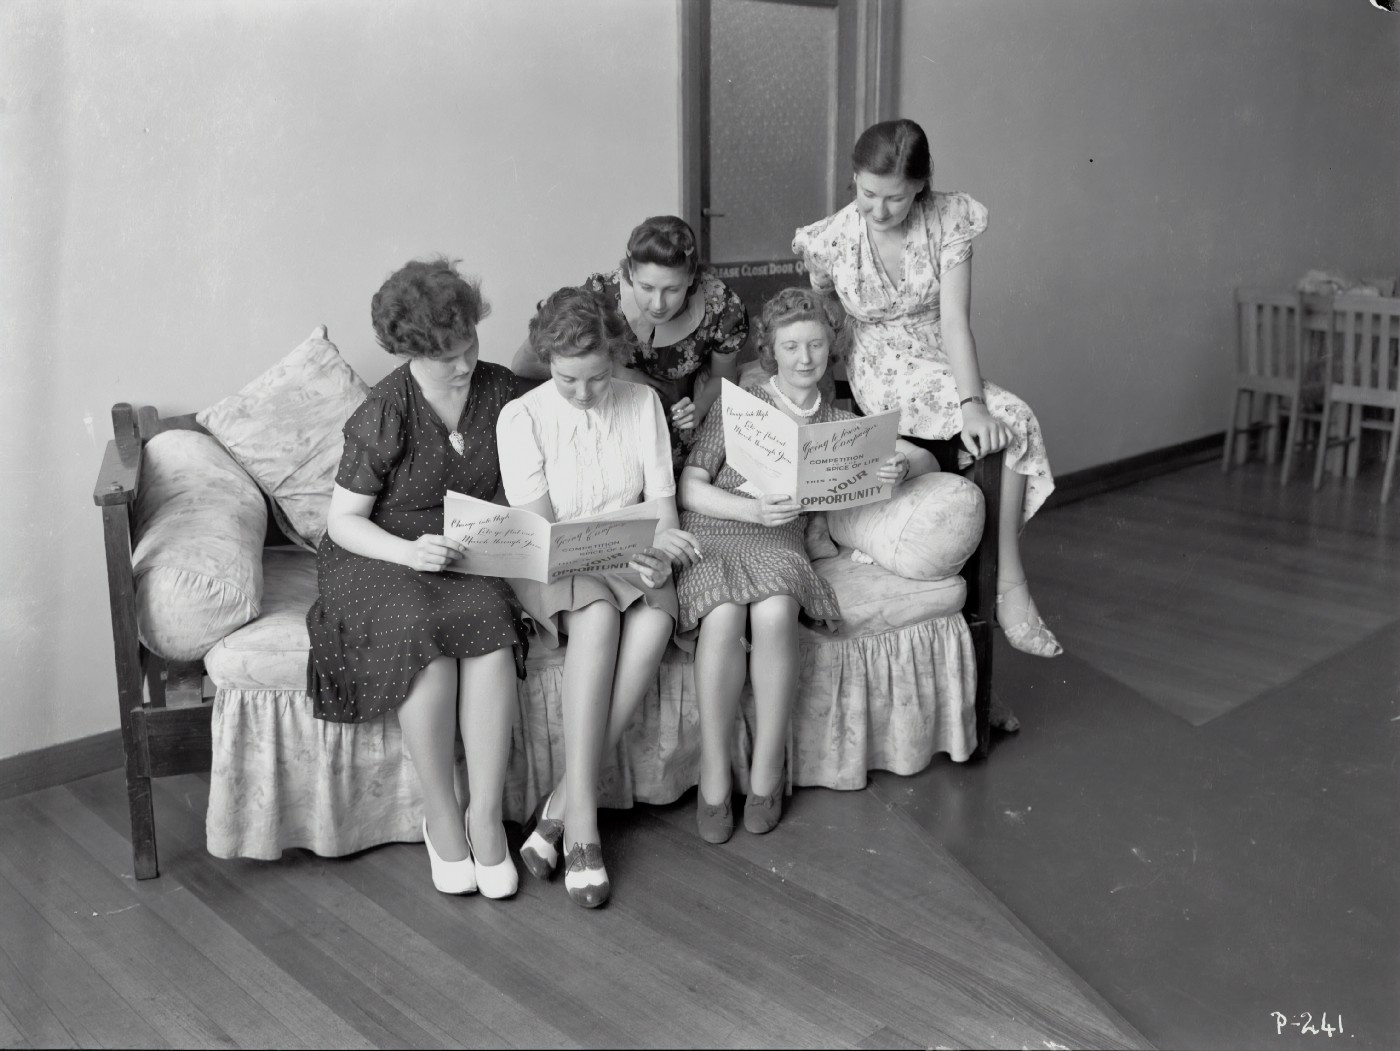 A black and white photo of women in dresses and skirts gathered on a couch reading pamphlets